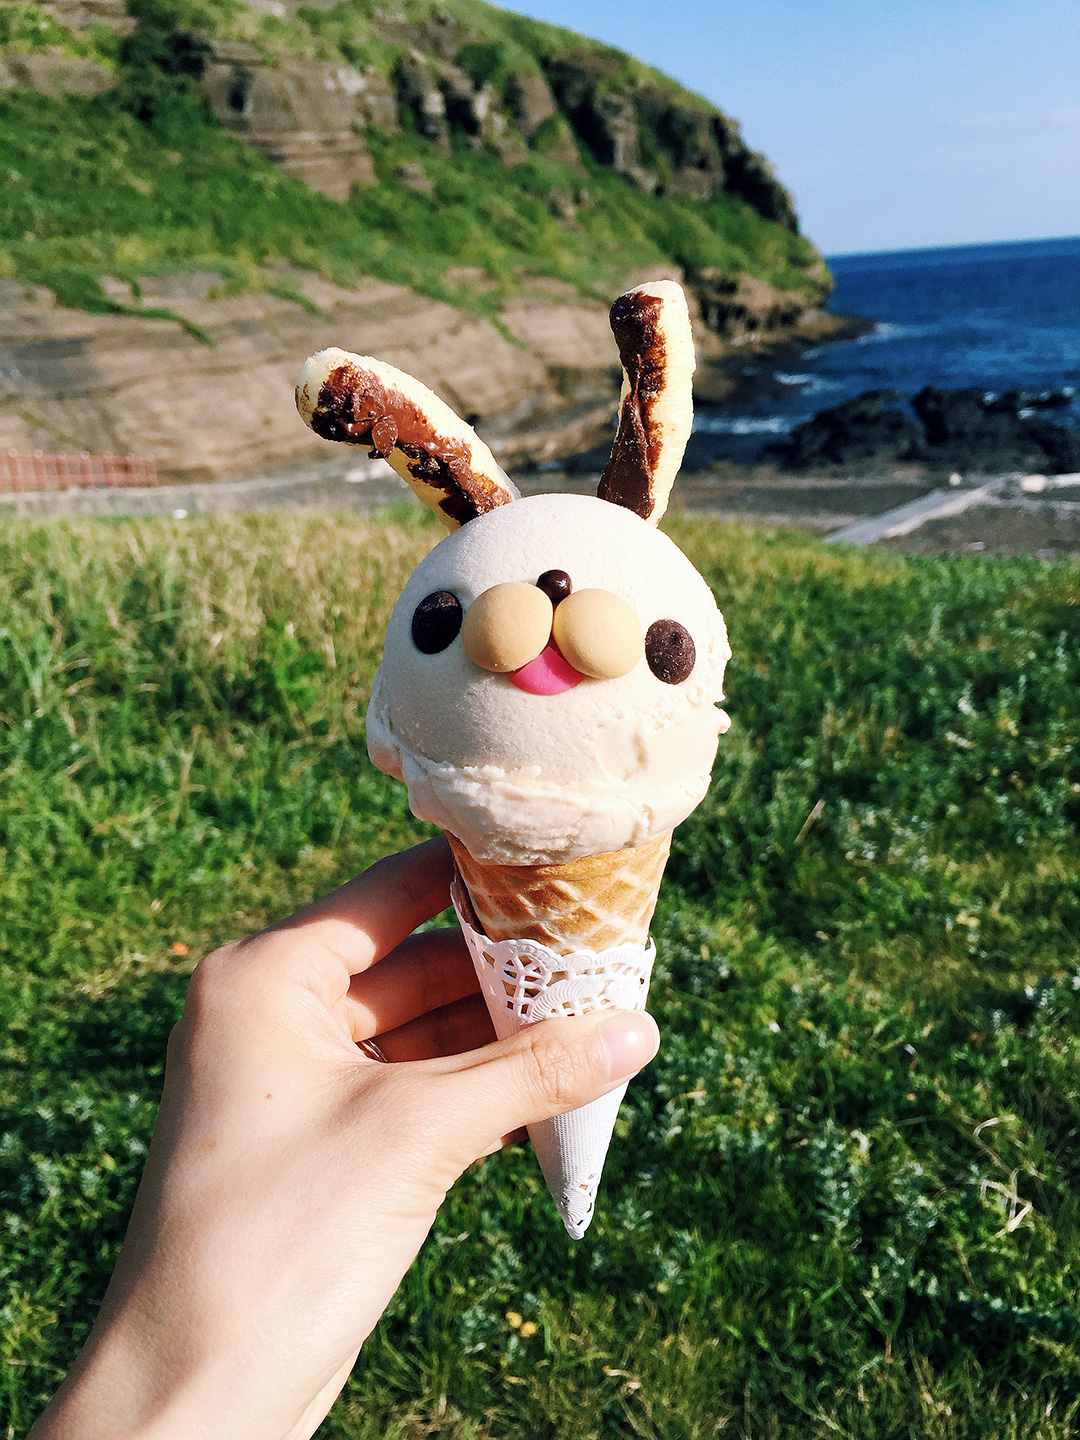 """Enjoying the cutest, hazelnut """"bunny"""" ice cream from Chi Chi Pong while enjoying the views of Yongmeori coast. This is vacation at its best!  Information:  Chi Chi Pong   Yongmeori Coast"""